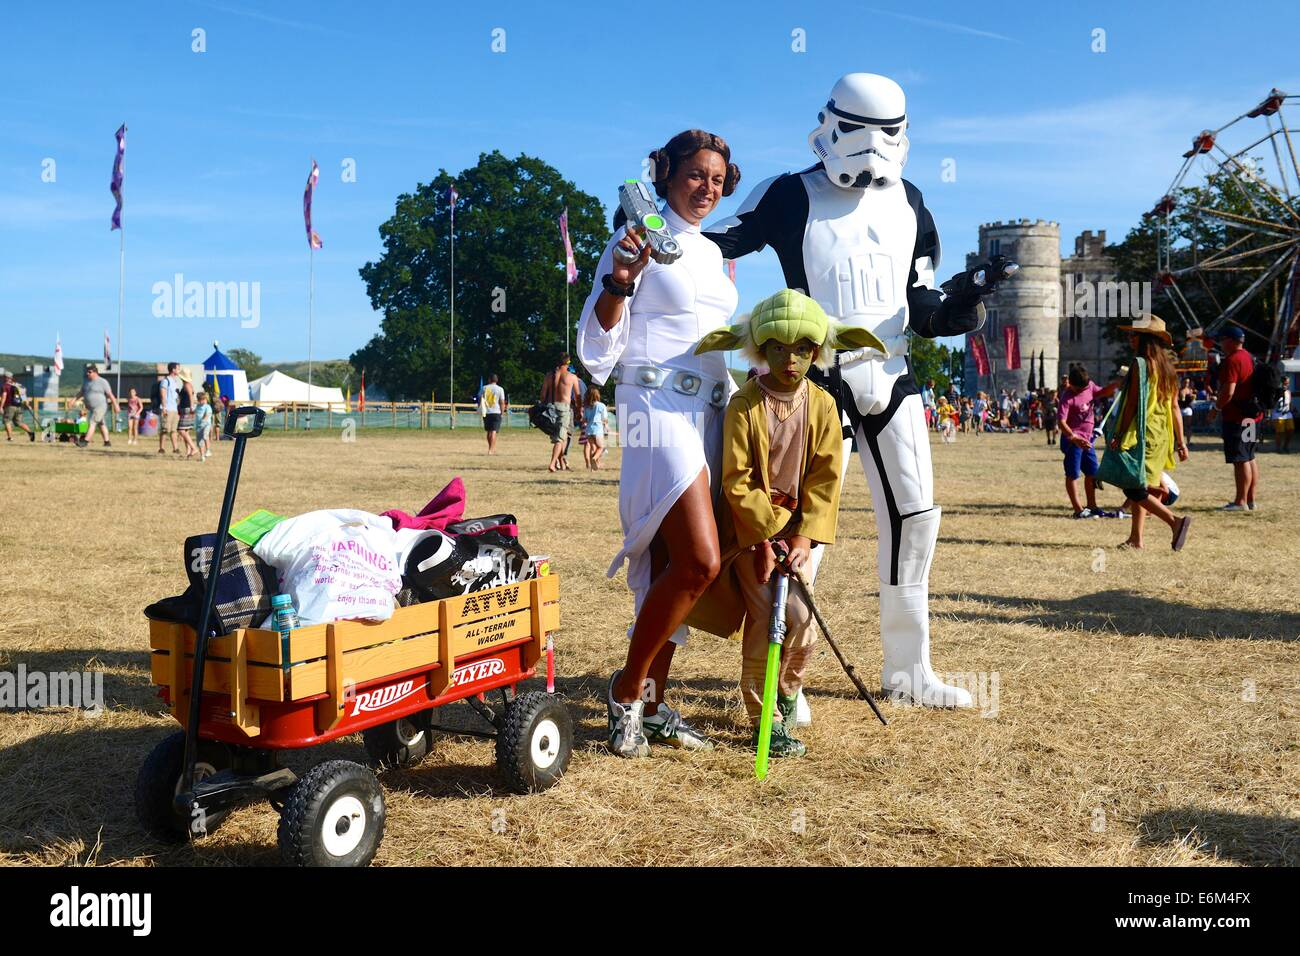 Familia en Star Wars Fancy Dress en Camp Bestival 2014 en Lulworth Castle Imagen De Stock